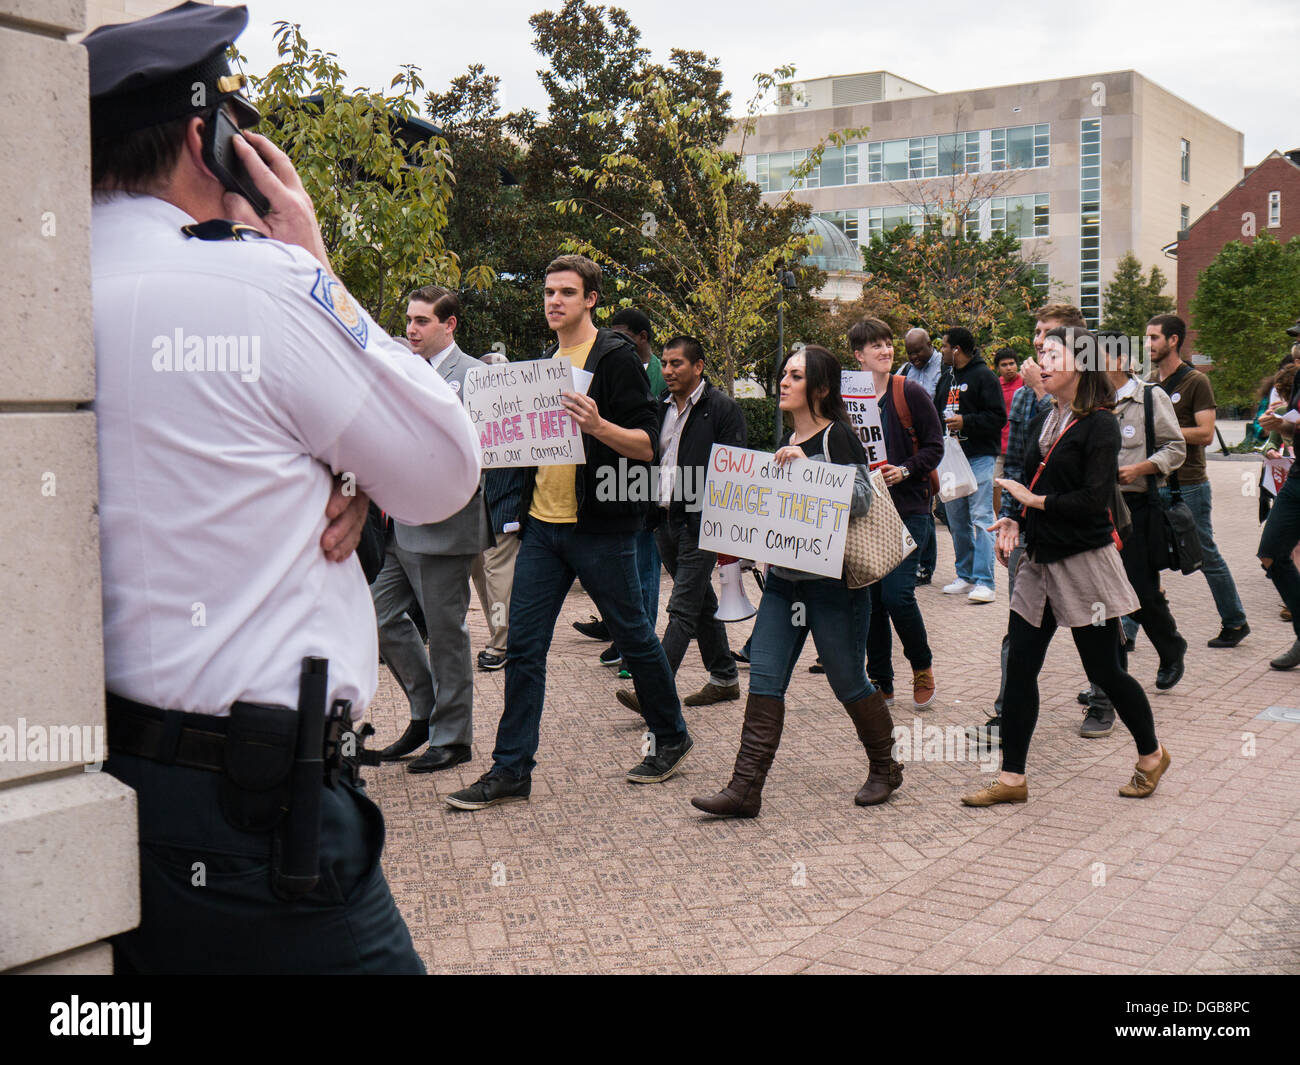 Washington DC, USA . 17th Oct, 2013.  George Washington University students, workers and employees protest alleged wage theft by private contractors on their campus. Protesters marched on campus and delivered a list of demands to university administrators. Credit:  Ann Little/Alamy Live News - Stock Image